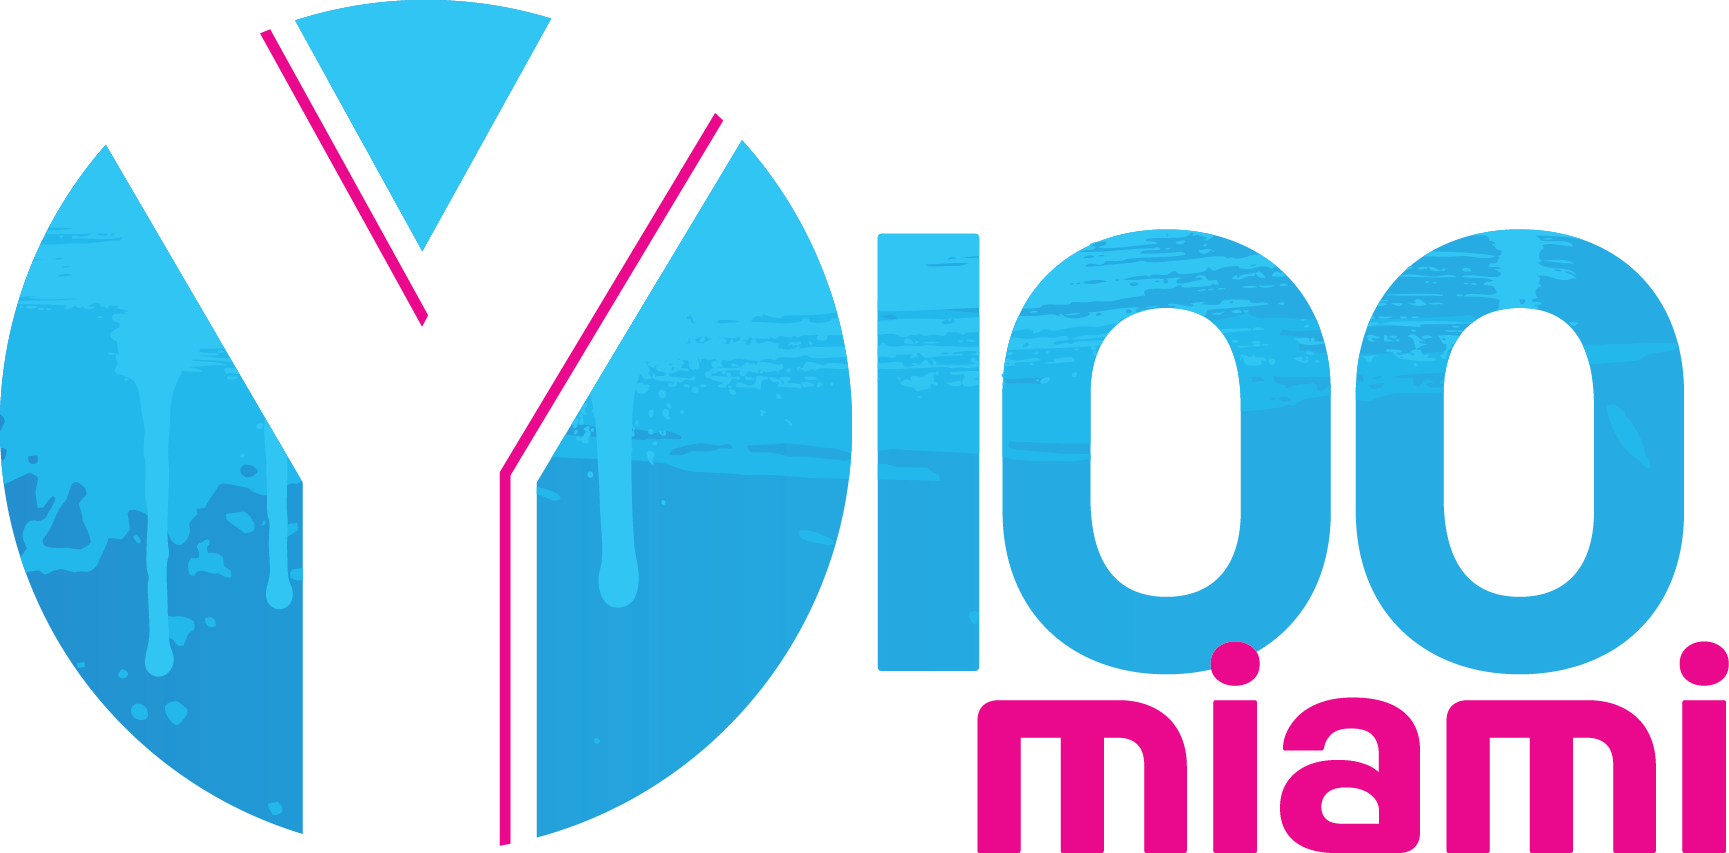 Whyi Fm Music Station Party Tickets Music